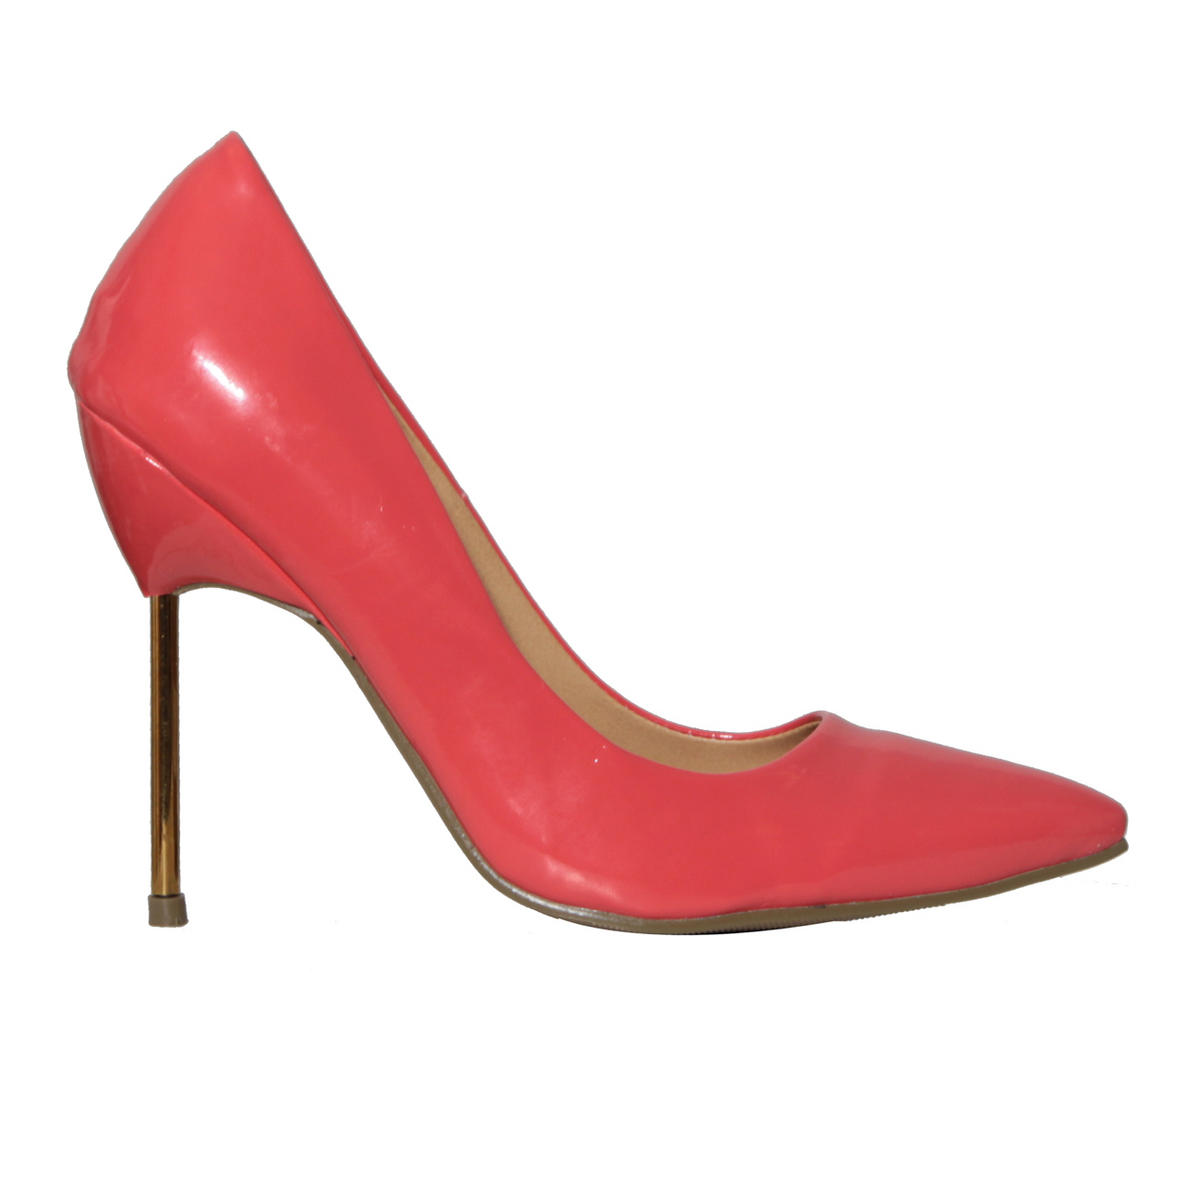 Coral Patent Spike Heel Shoe Preview